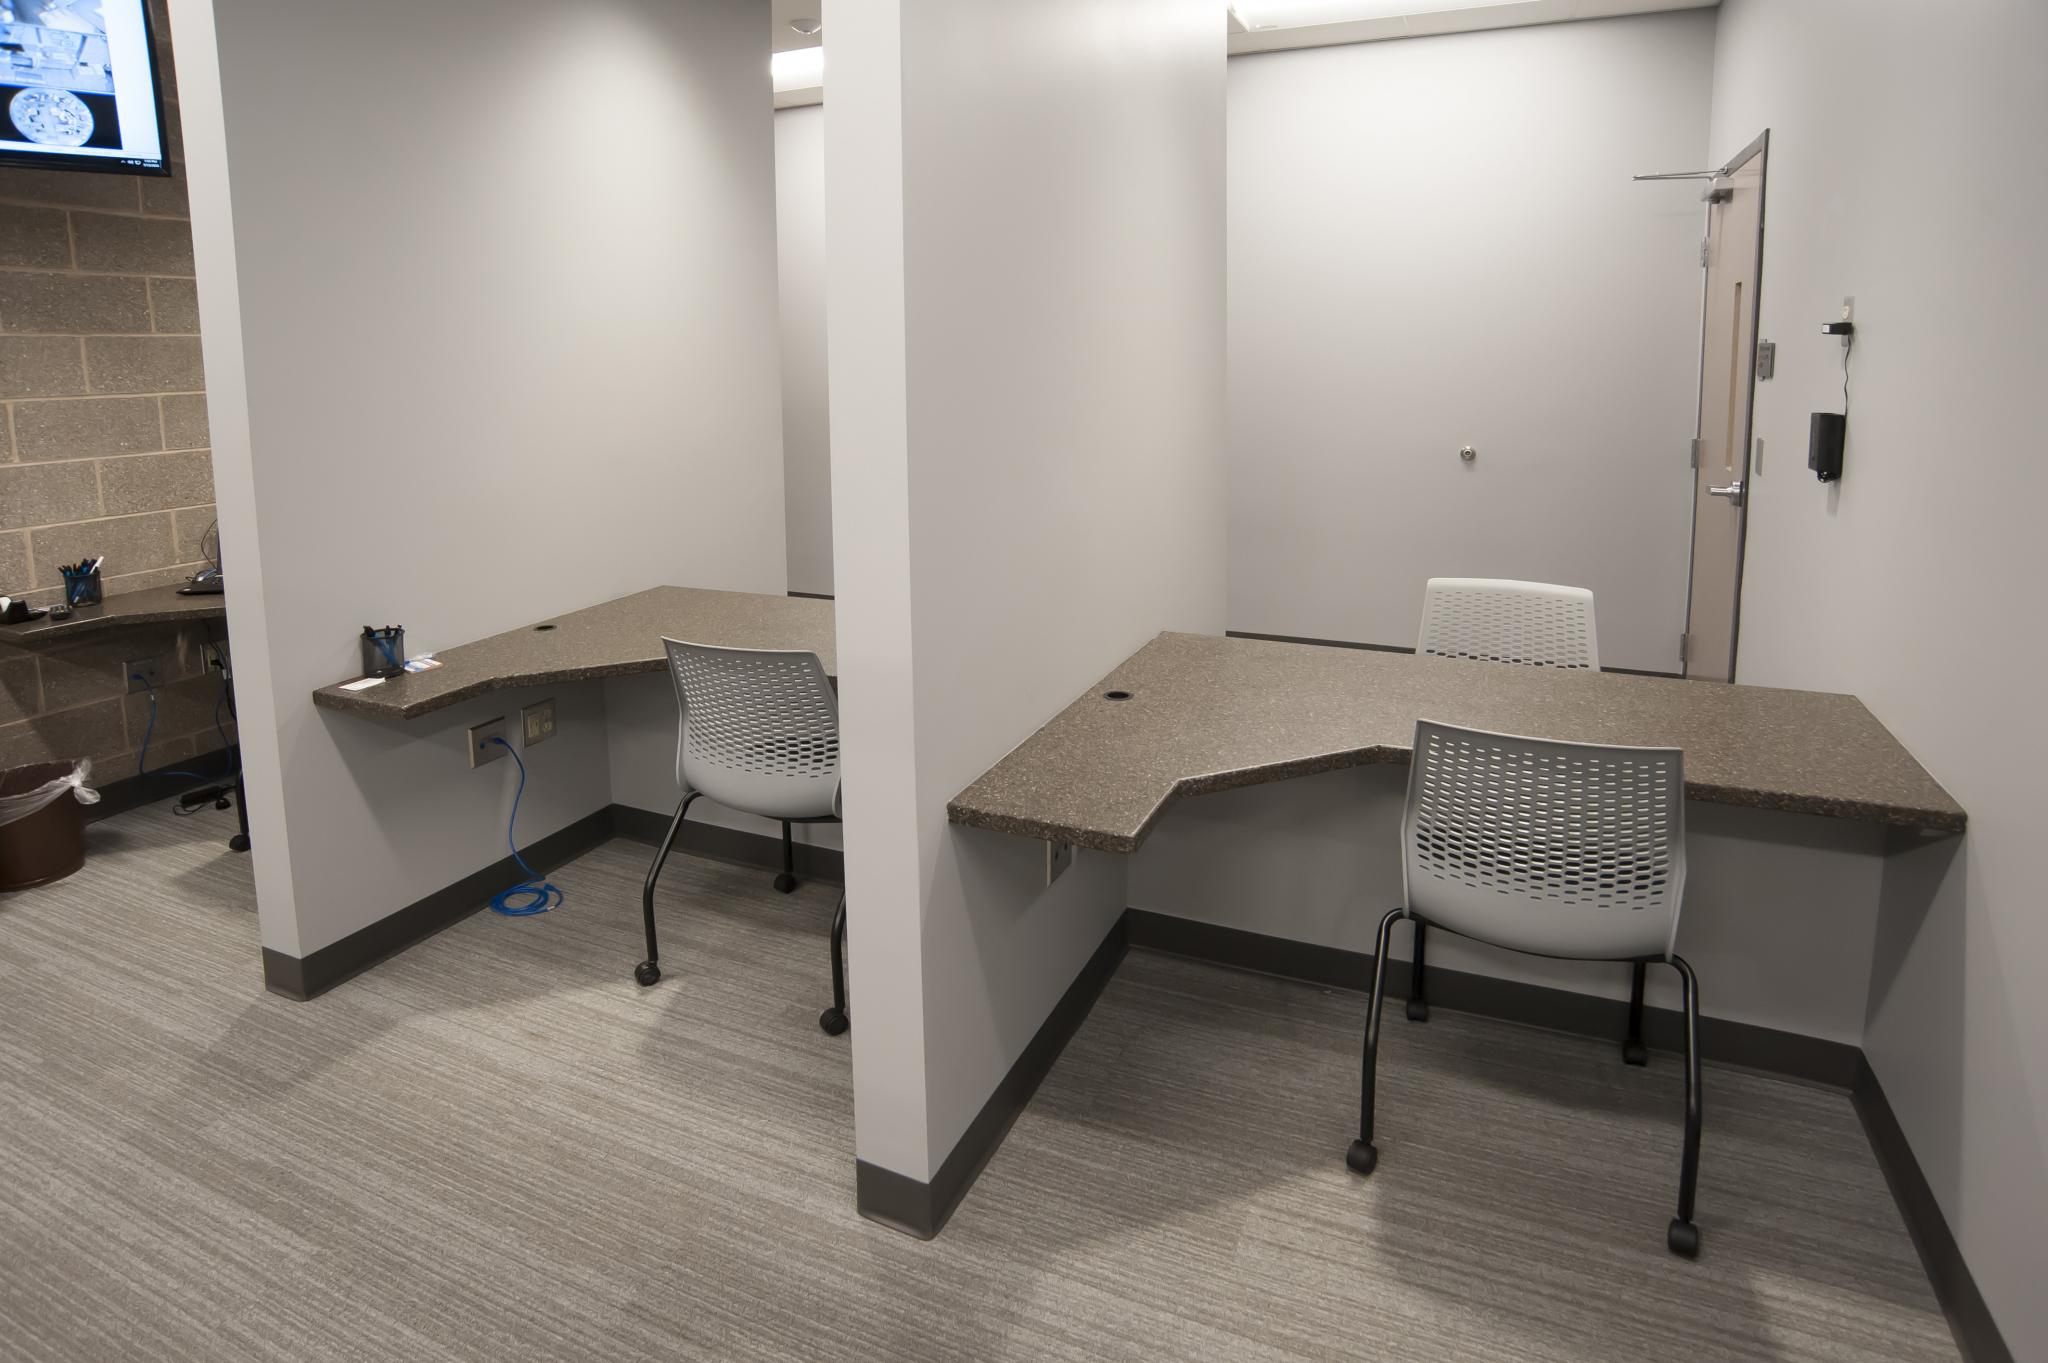 image of consultation rooms